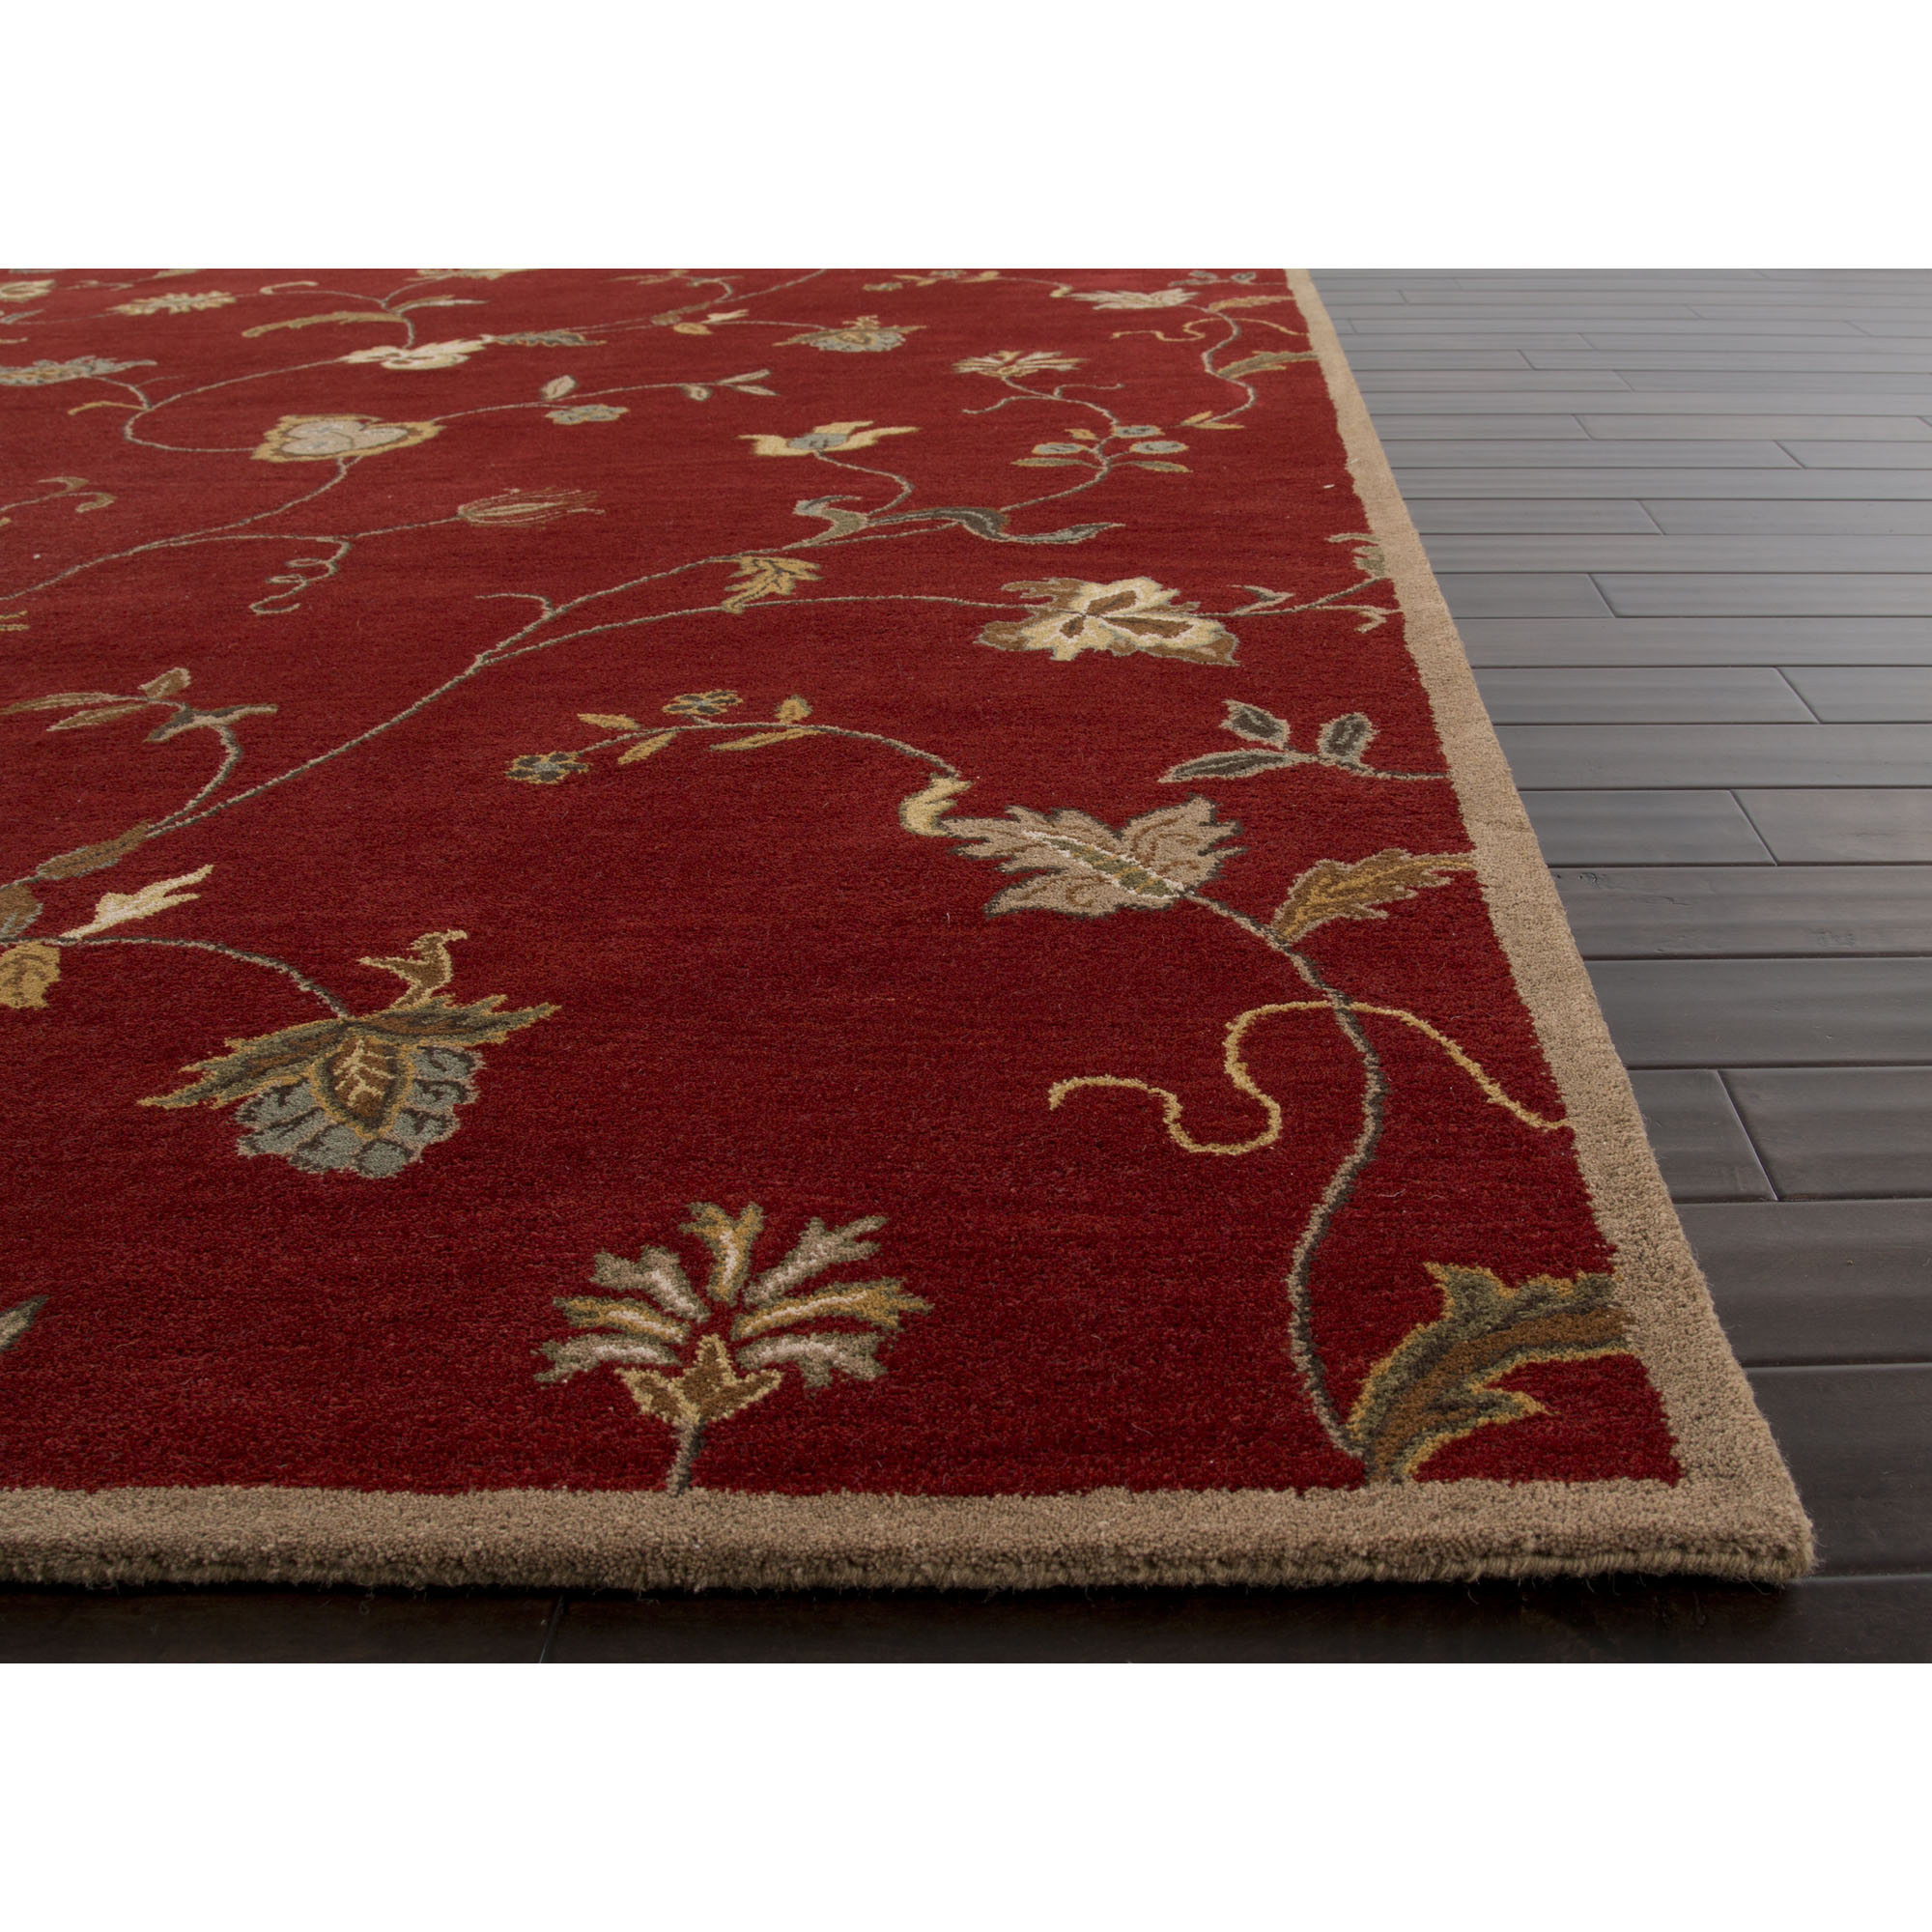 Jaipur Rugs Poeme Rug113380 9 X 12 Rug Baer S Furniture